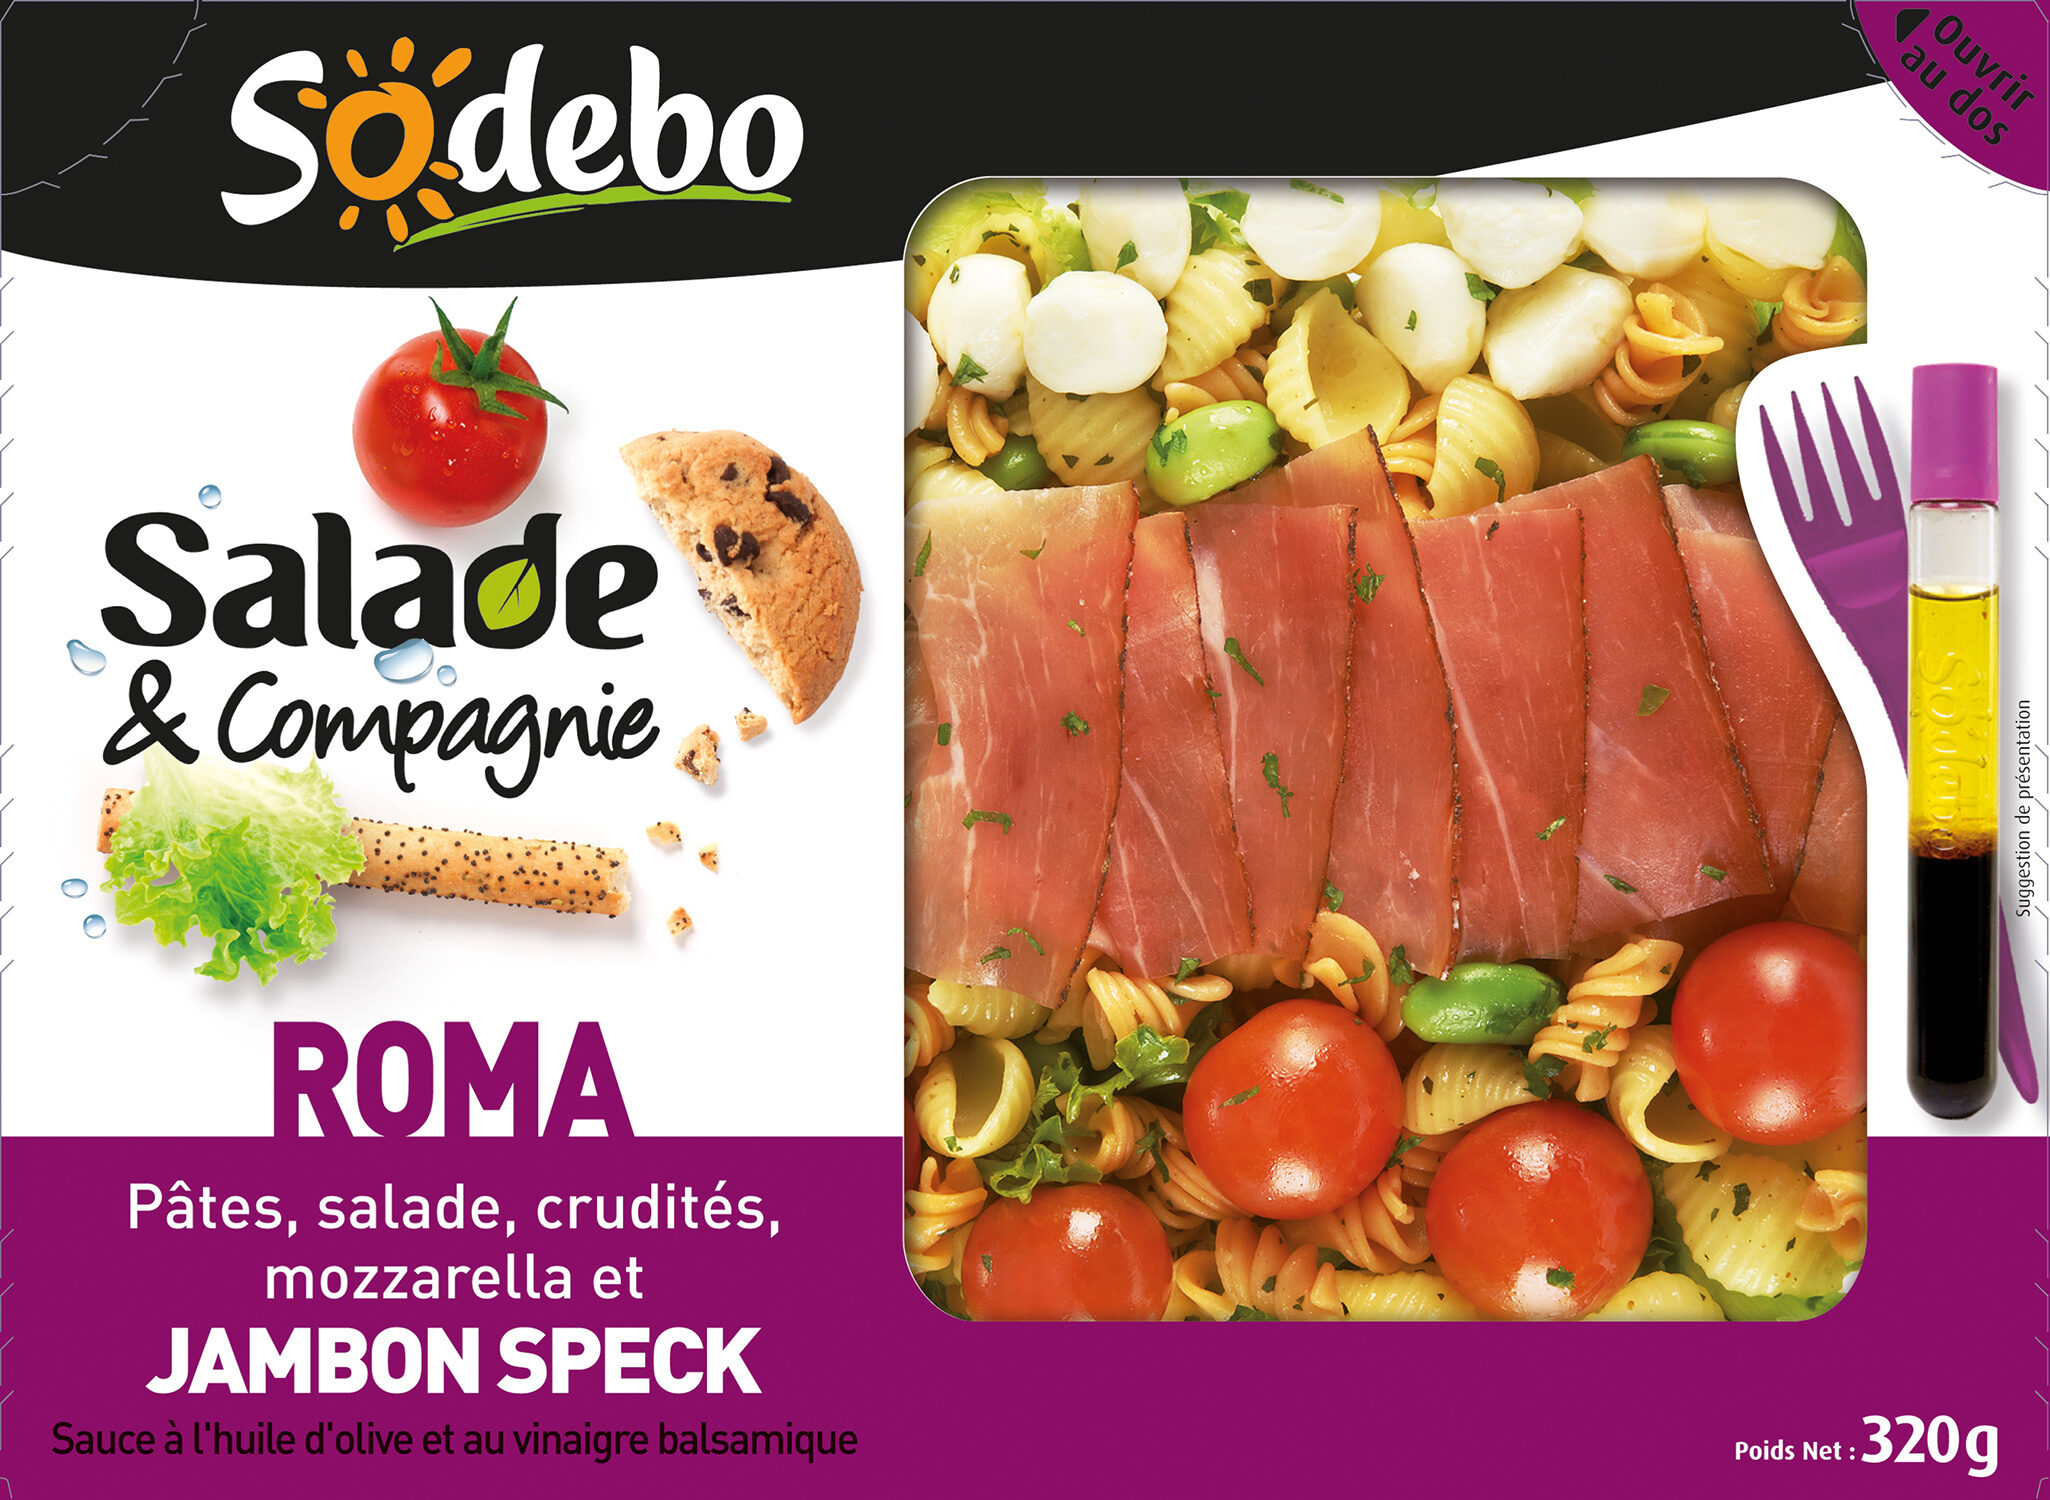 Salade & Compagnie - Roma - Producto - fr